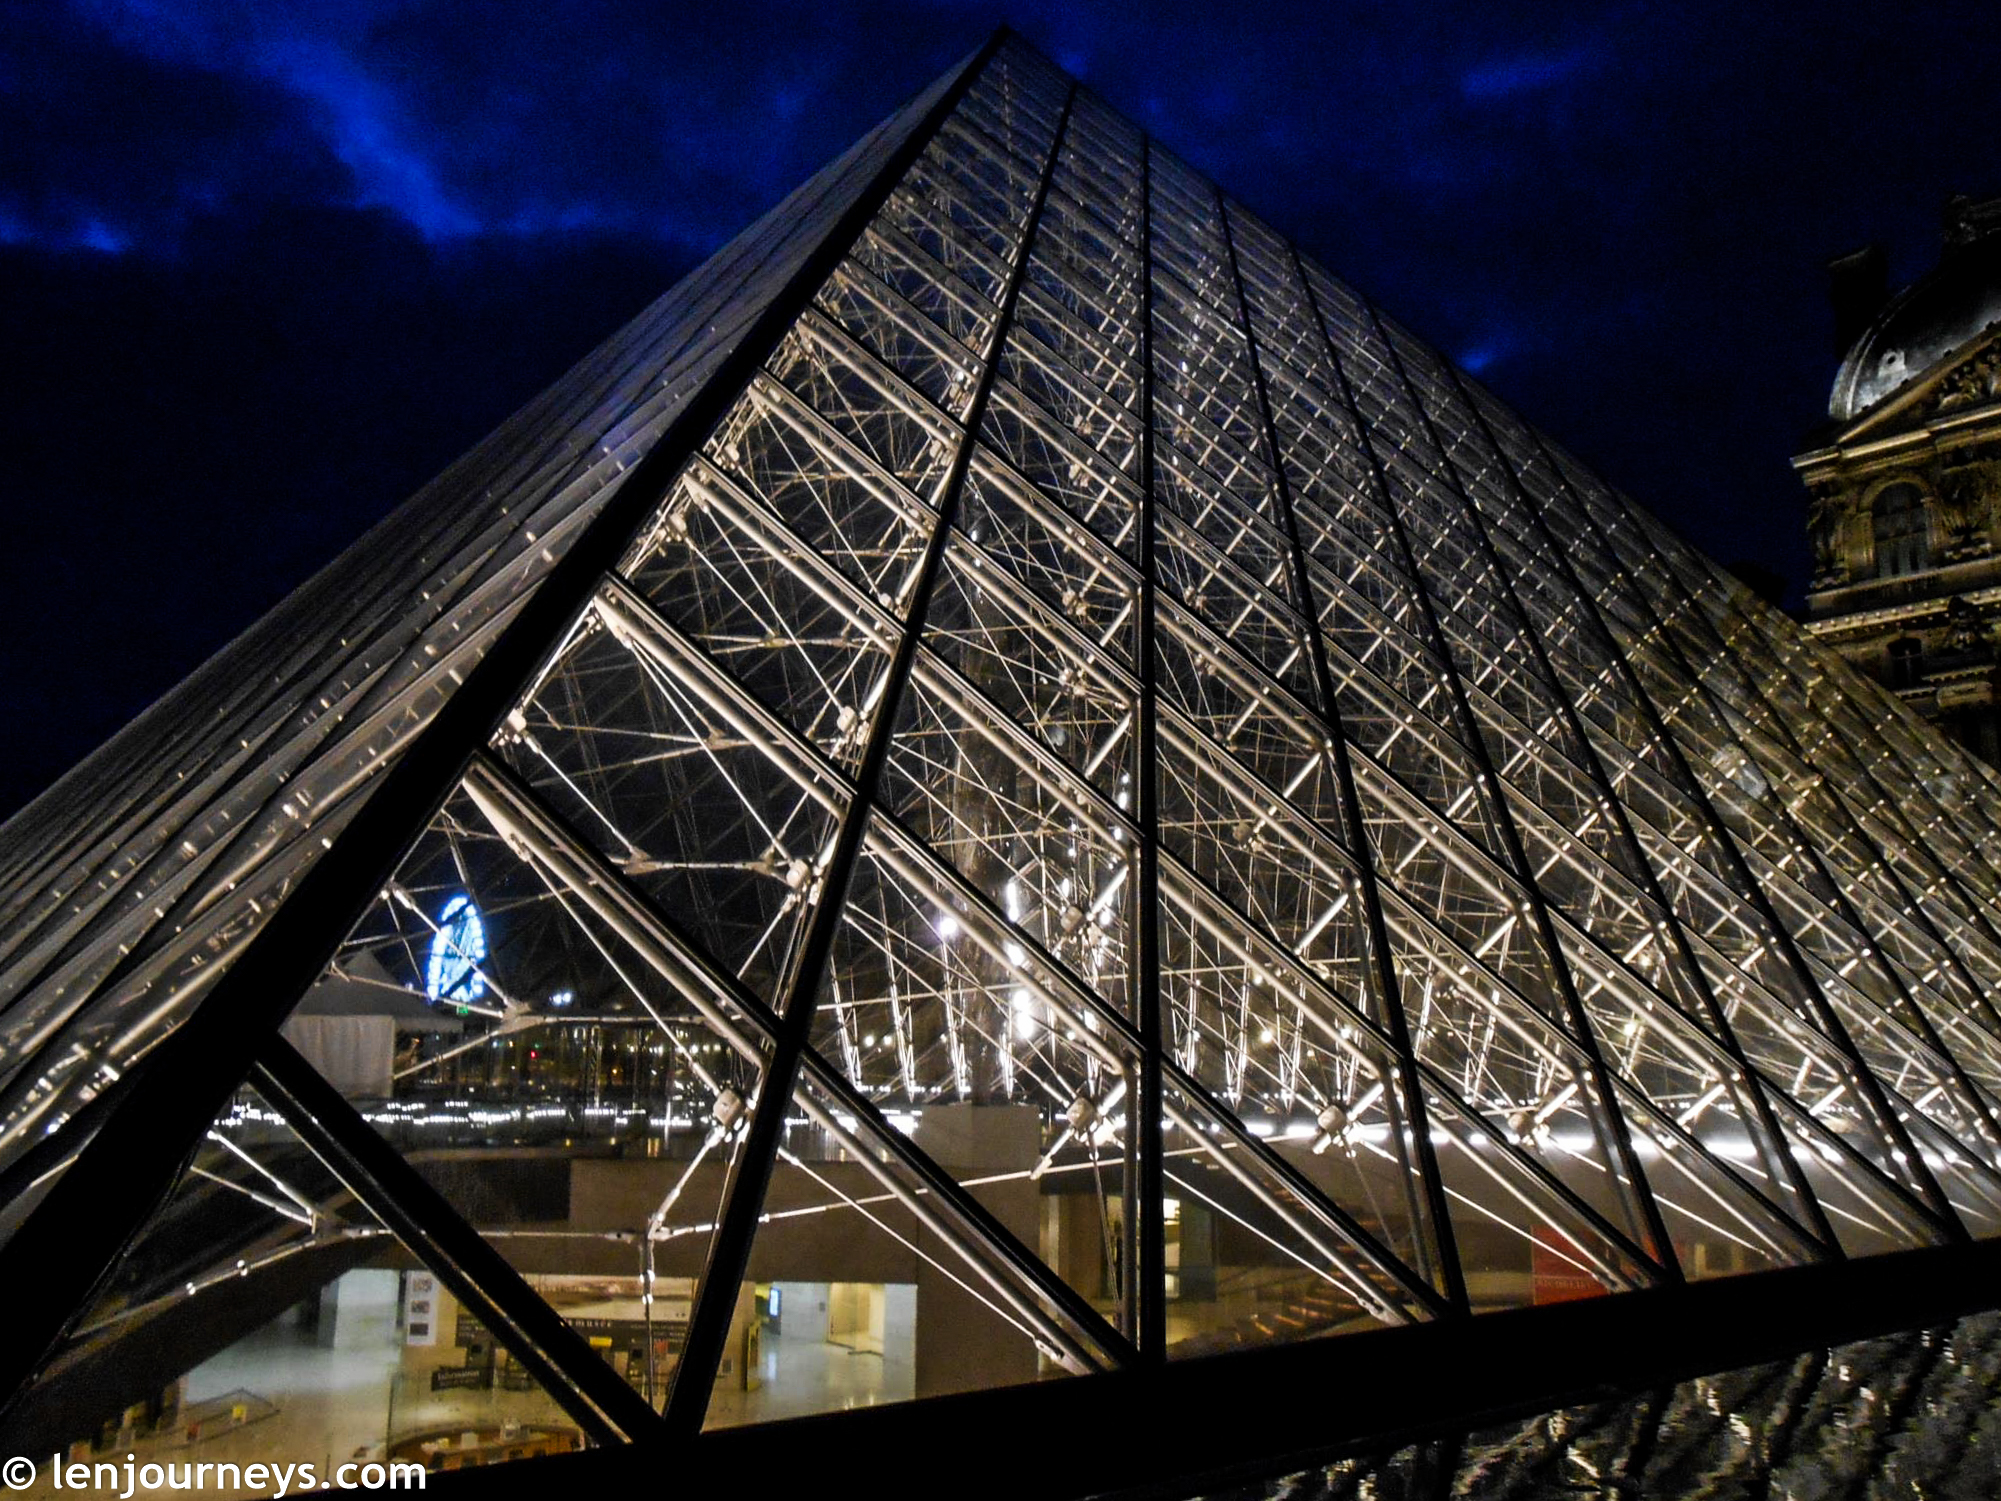 The glass pyramid at night